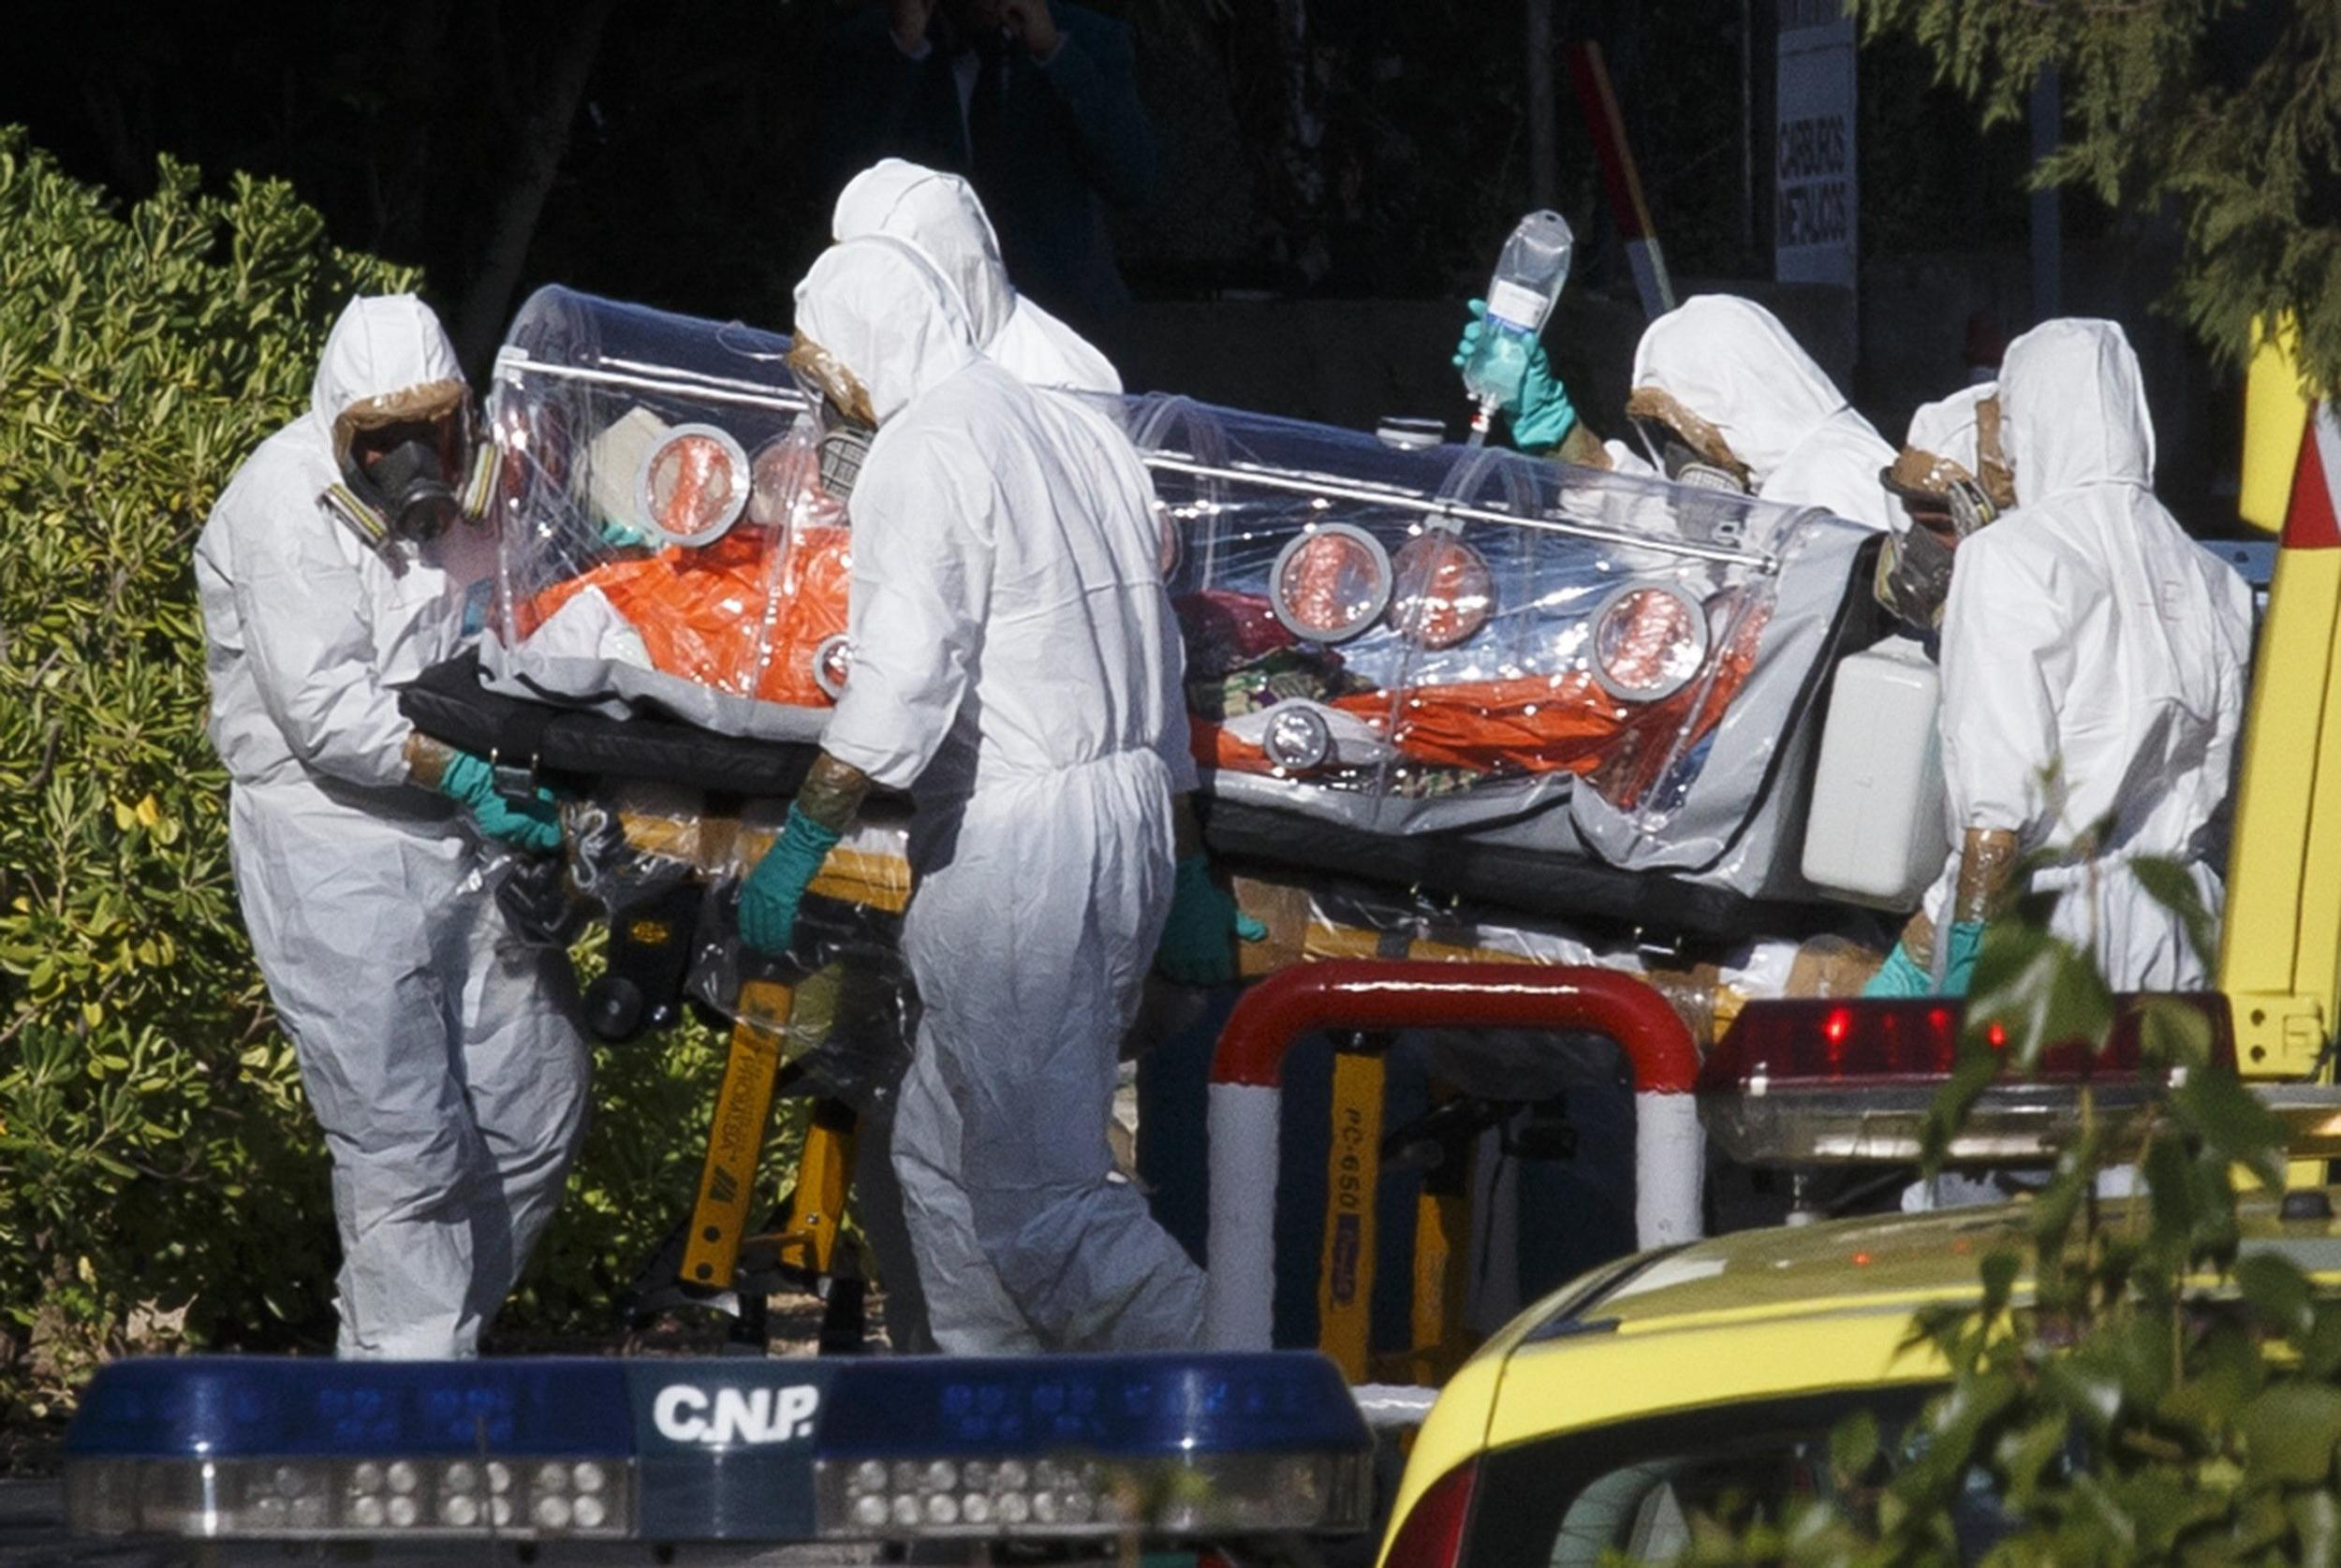 https://i0.wp.com/media3.s-nbcnews.com/i/newscms/2014_32/605416/140807-ebola-spain-7a_467e254a065a484d2c28f83b36a56d08.jpg